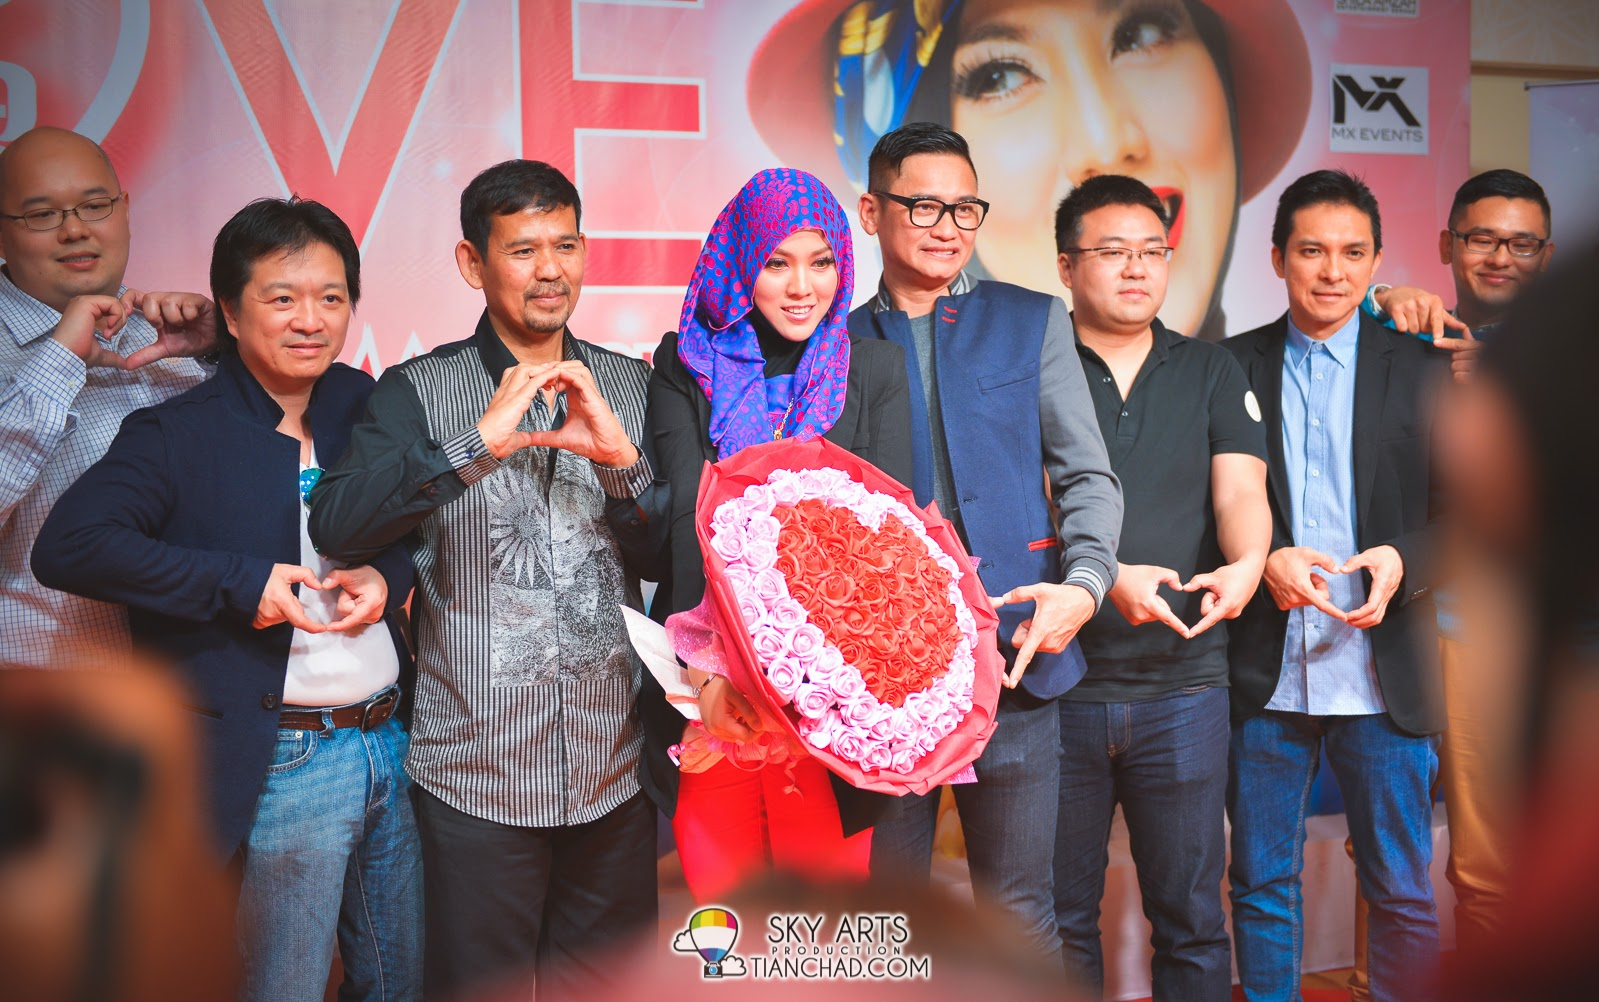 Shila together with sponsors and organizers #love